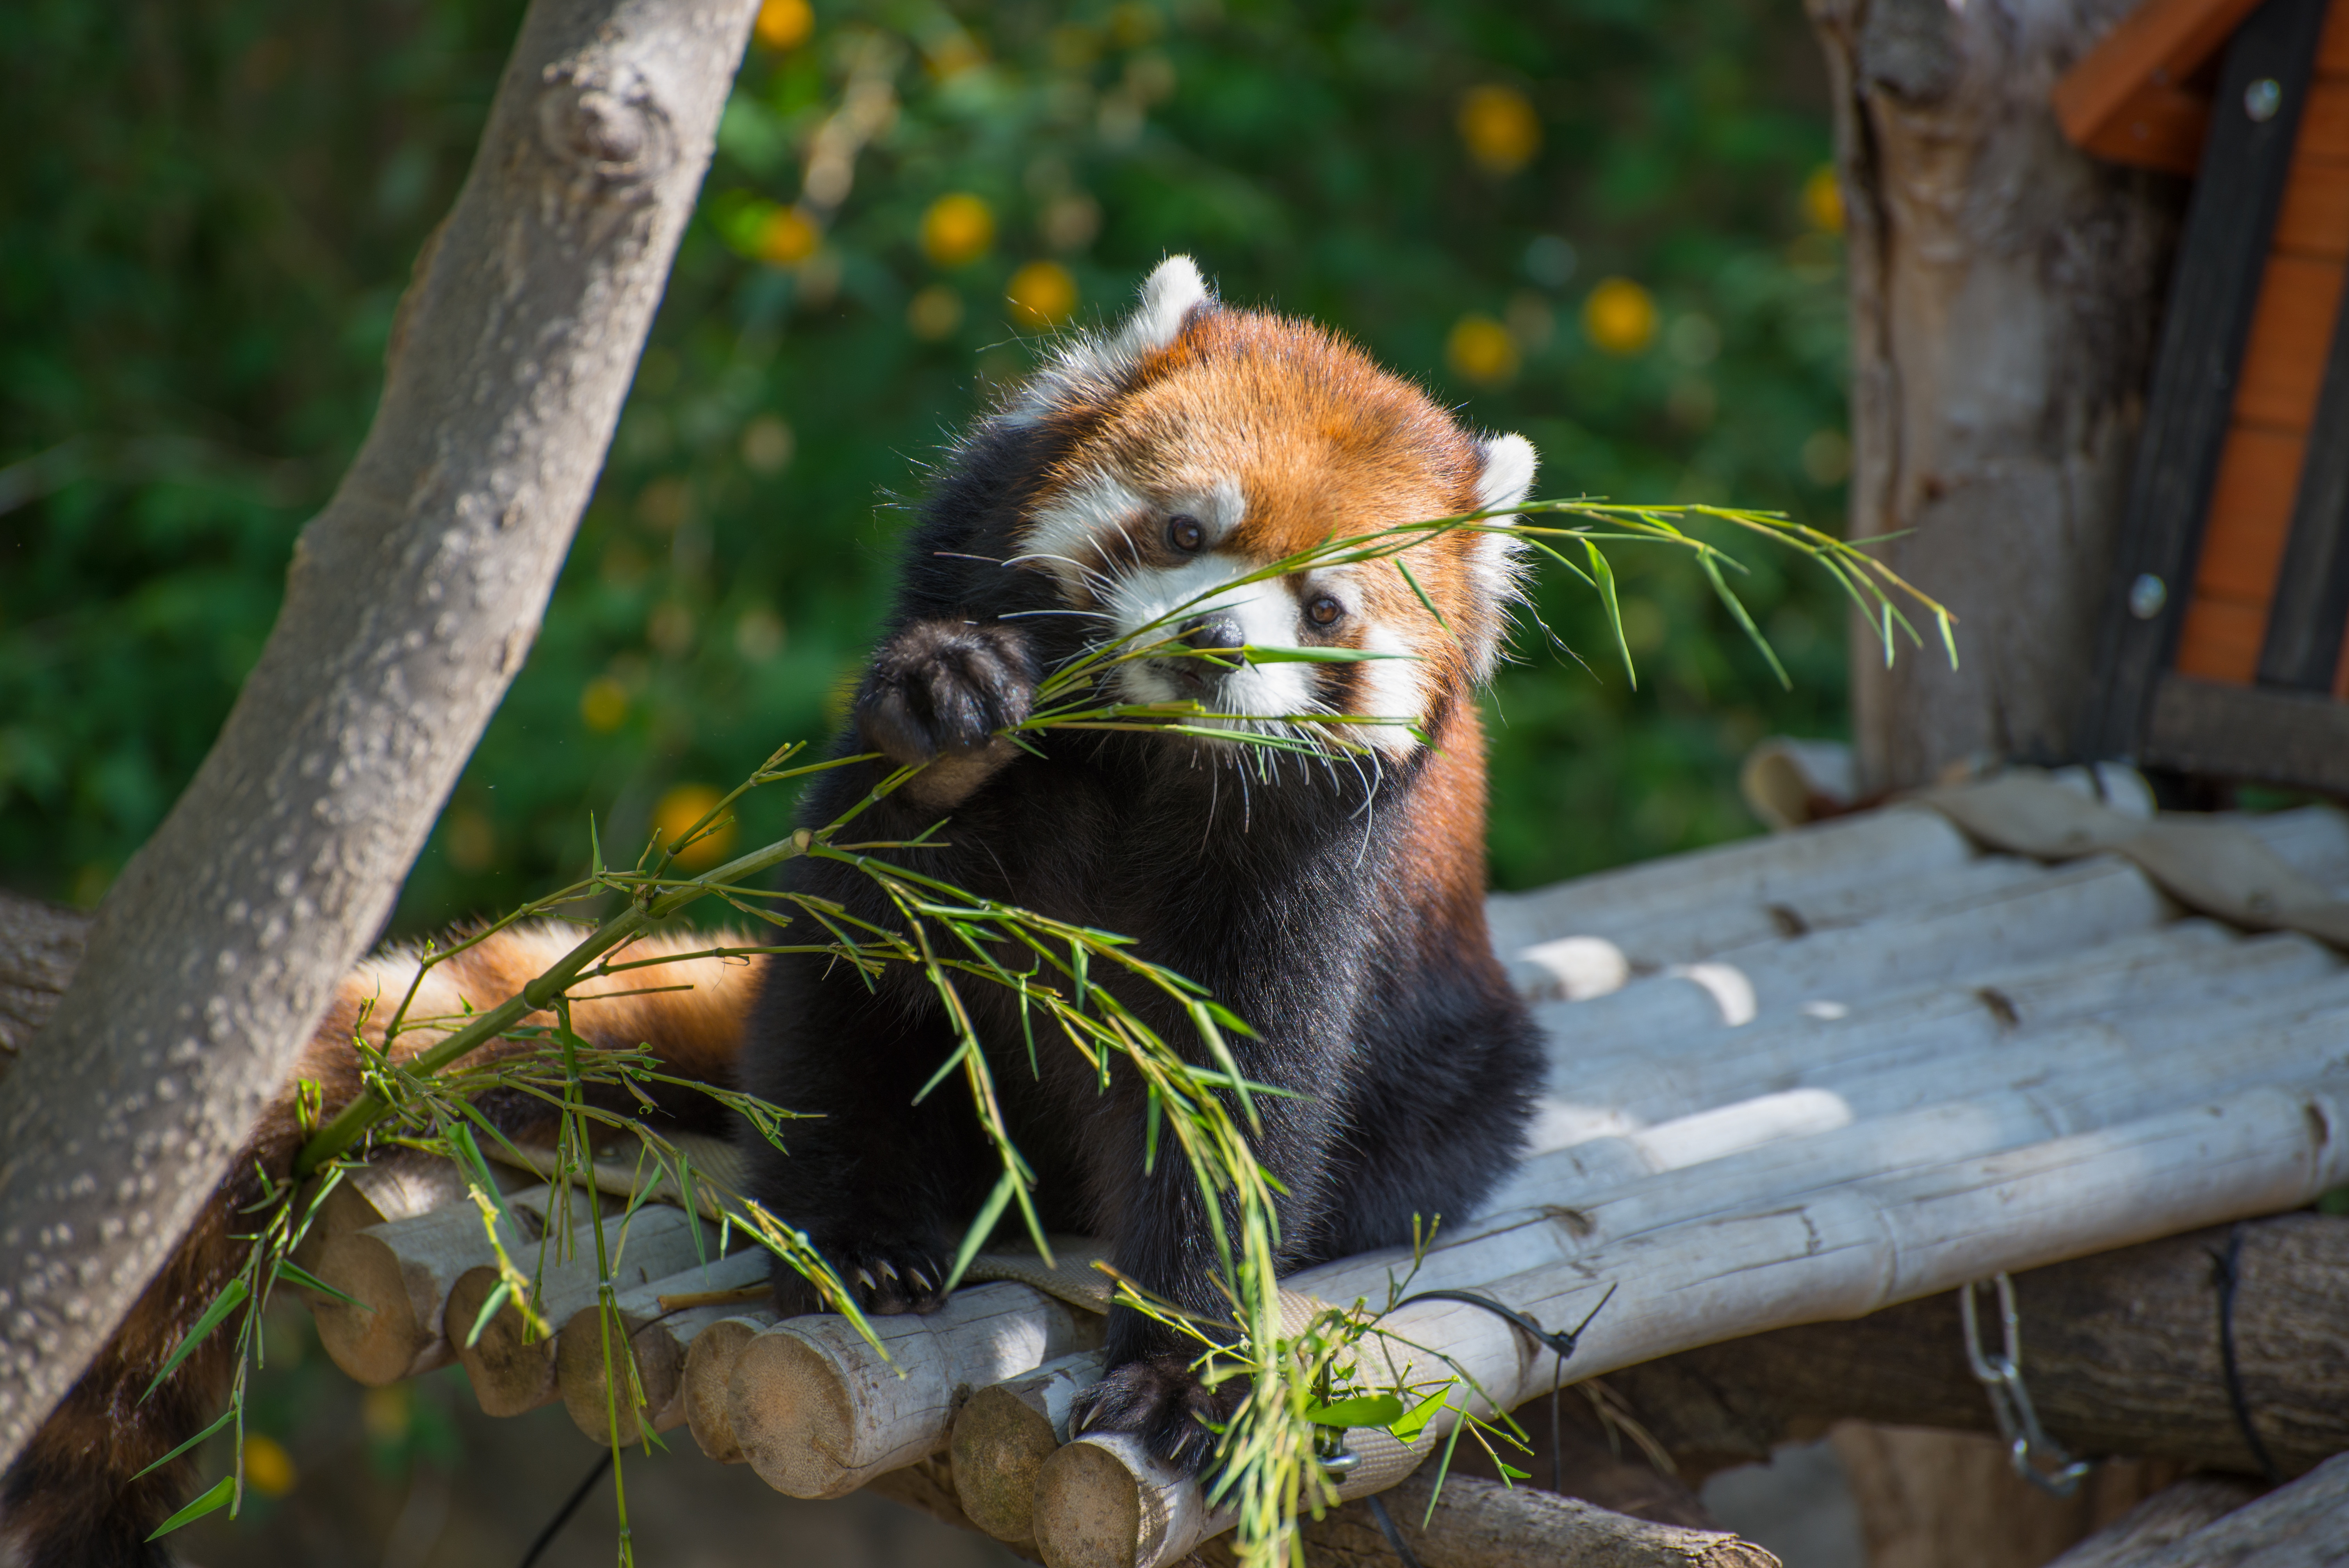 154021 download wallpaper Animals, Red Panda, Nice, Sweetheart, Branch, Bamboo screensavers and pictures for free